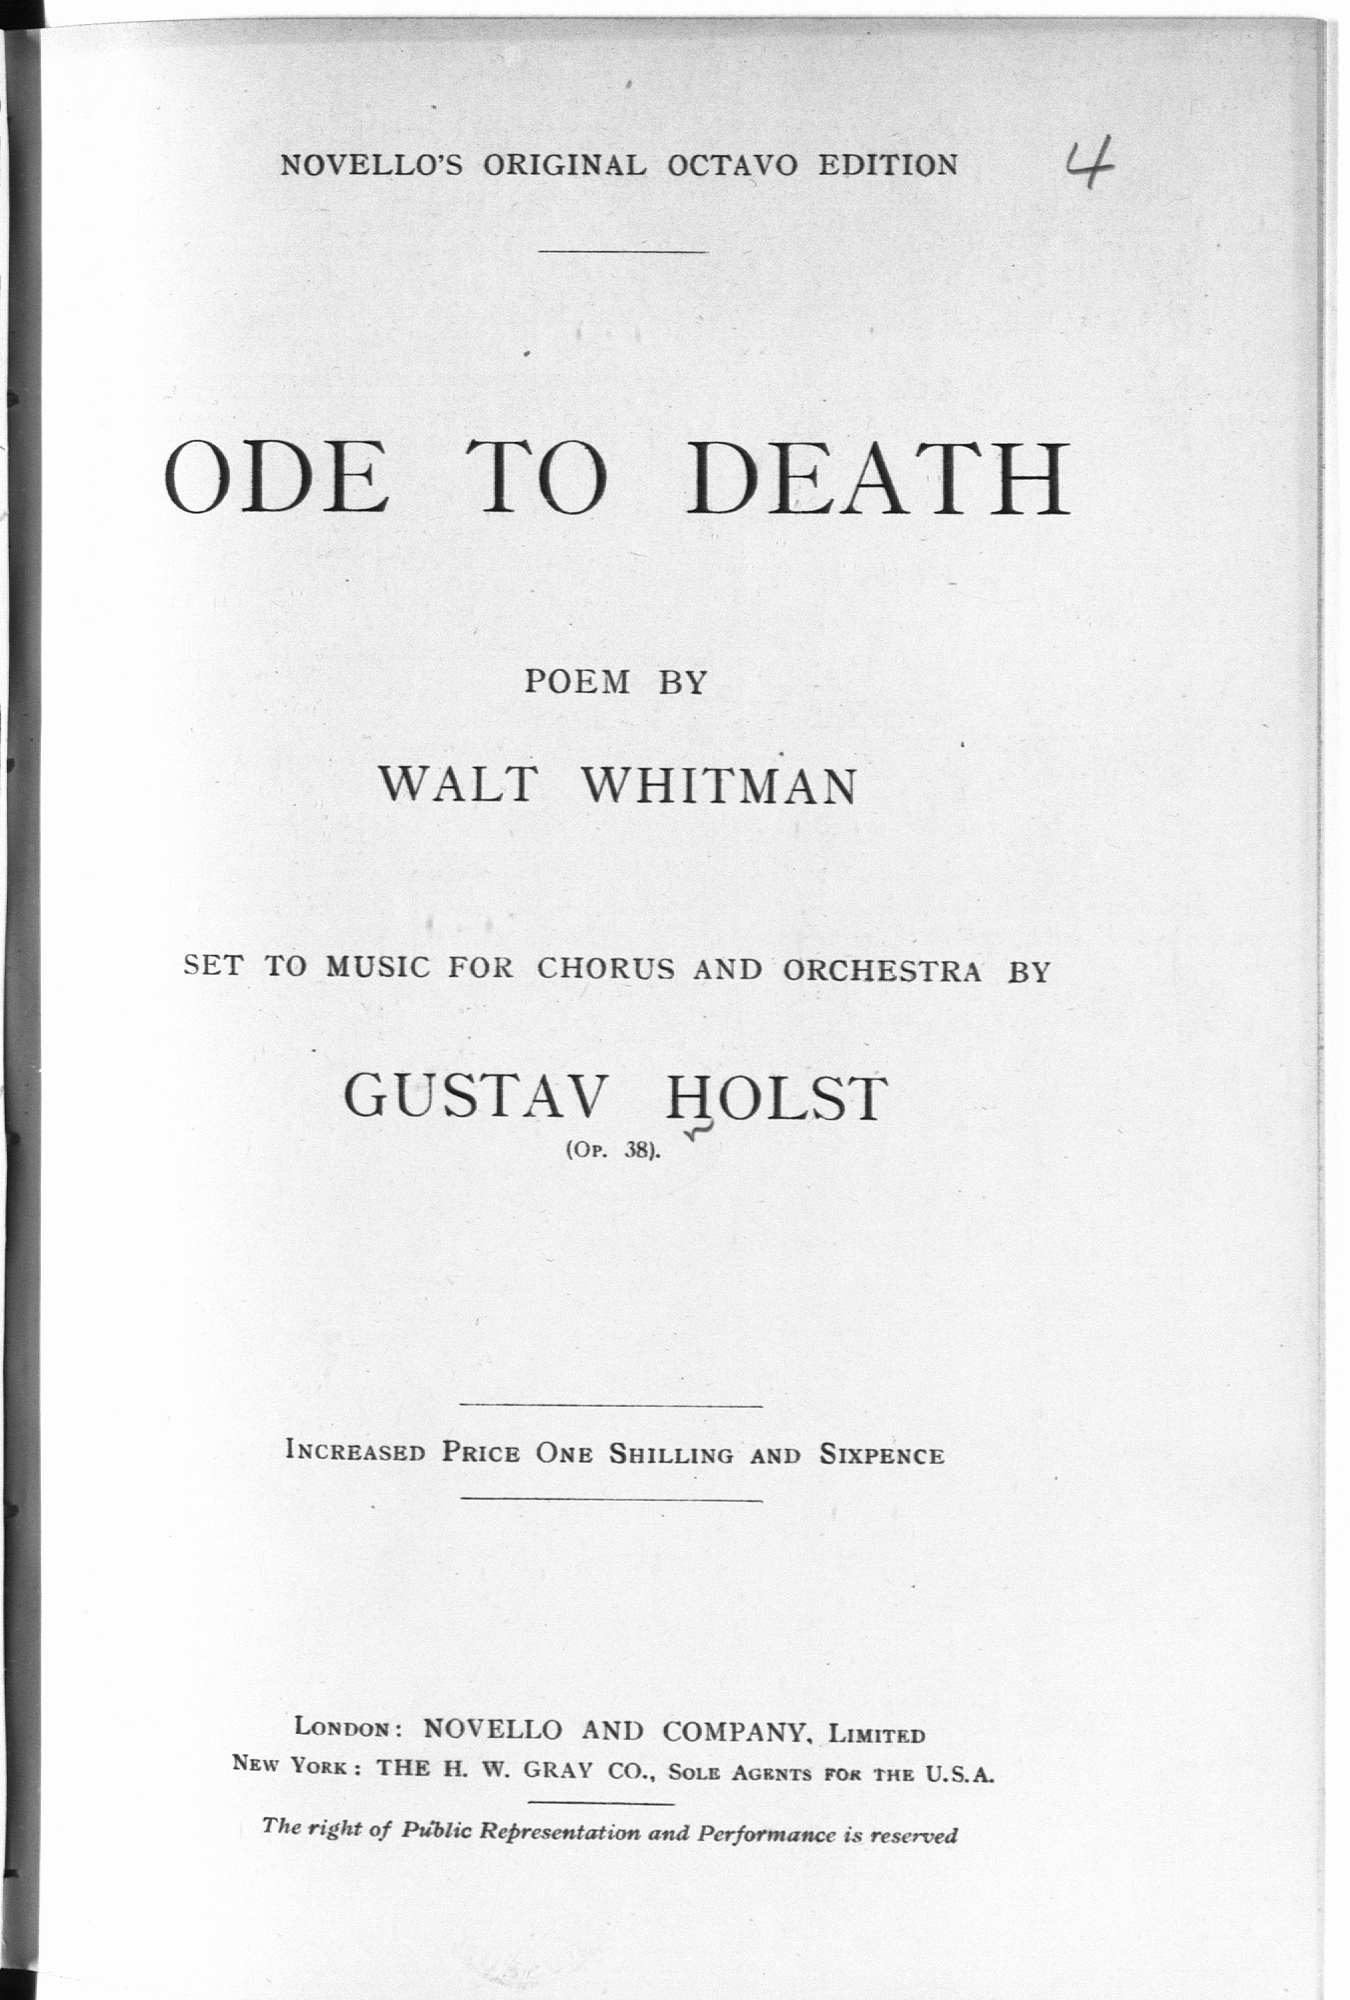 Composed in 1916-17, Gustav Holst's Ode to Death was written after he returned from entertaining the troops in Salonica.